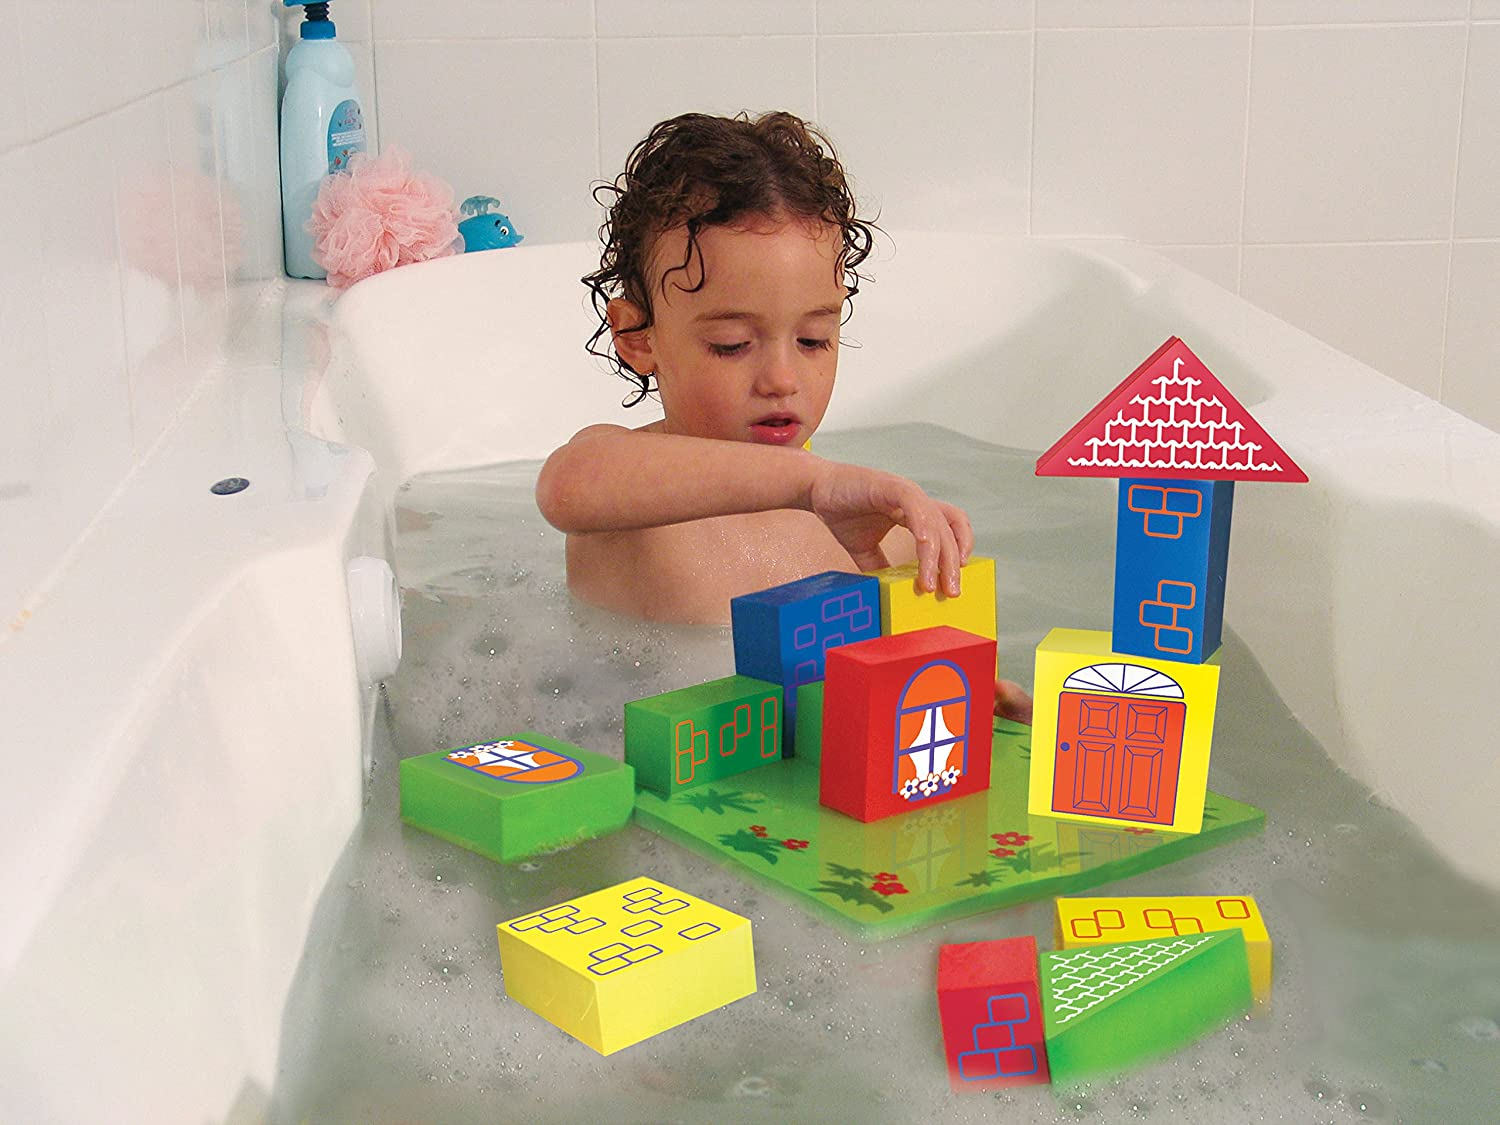 Amazon.com : Edushape Floating Blocks : Toy Stacking Block Sets : Baby